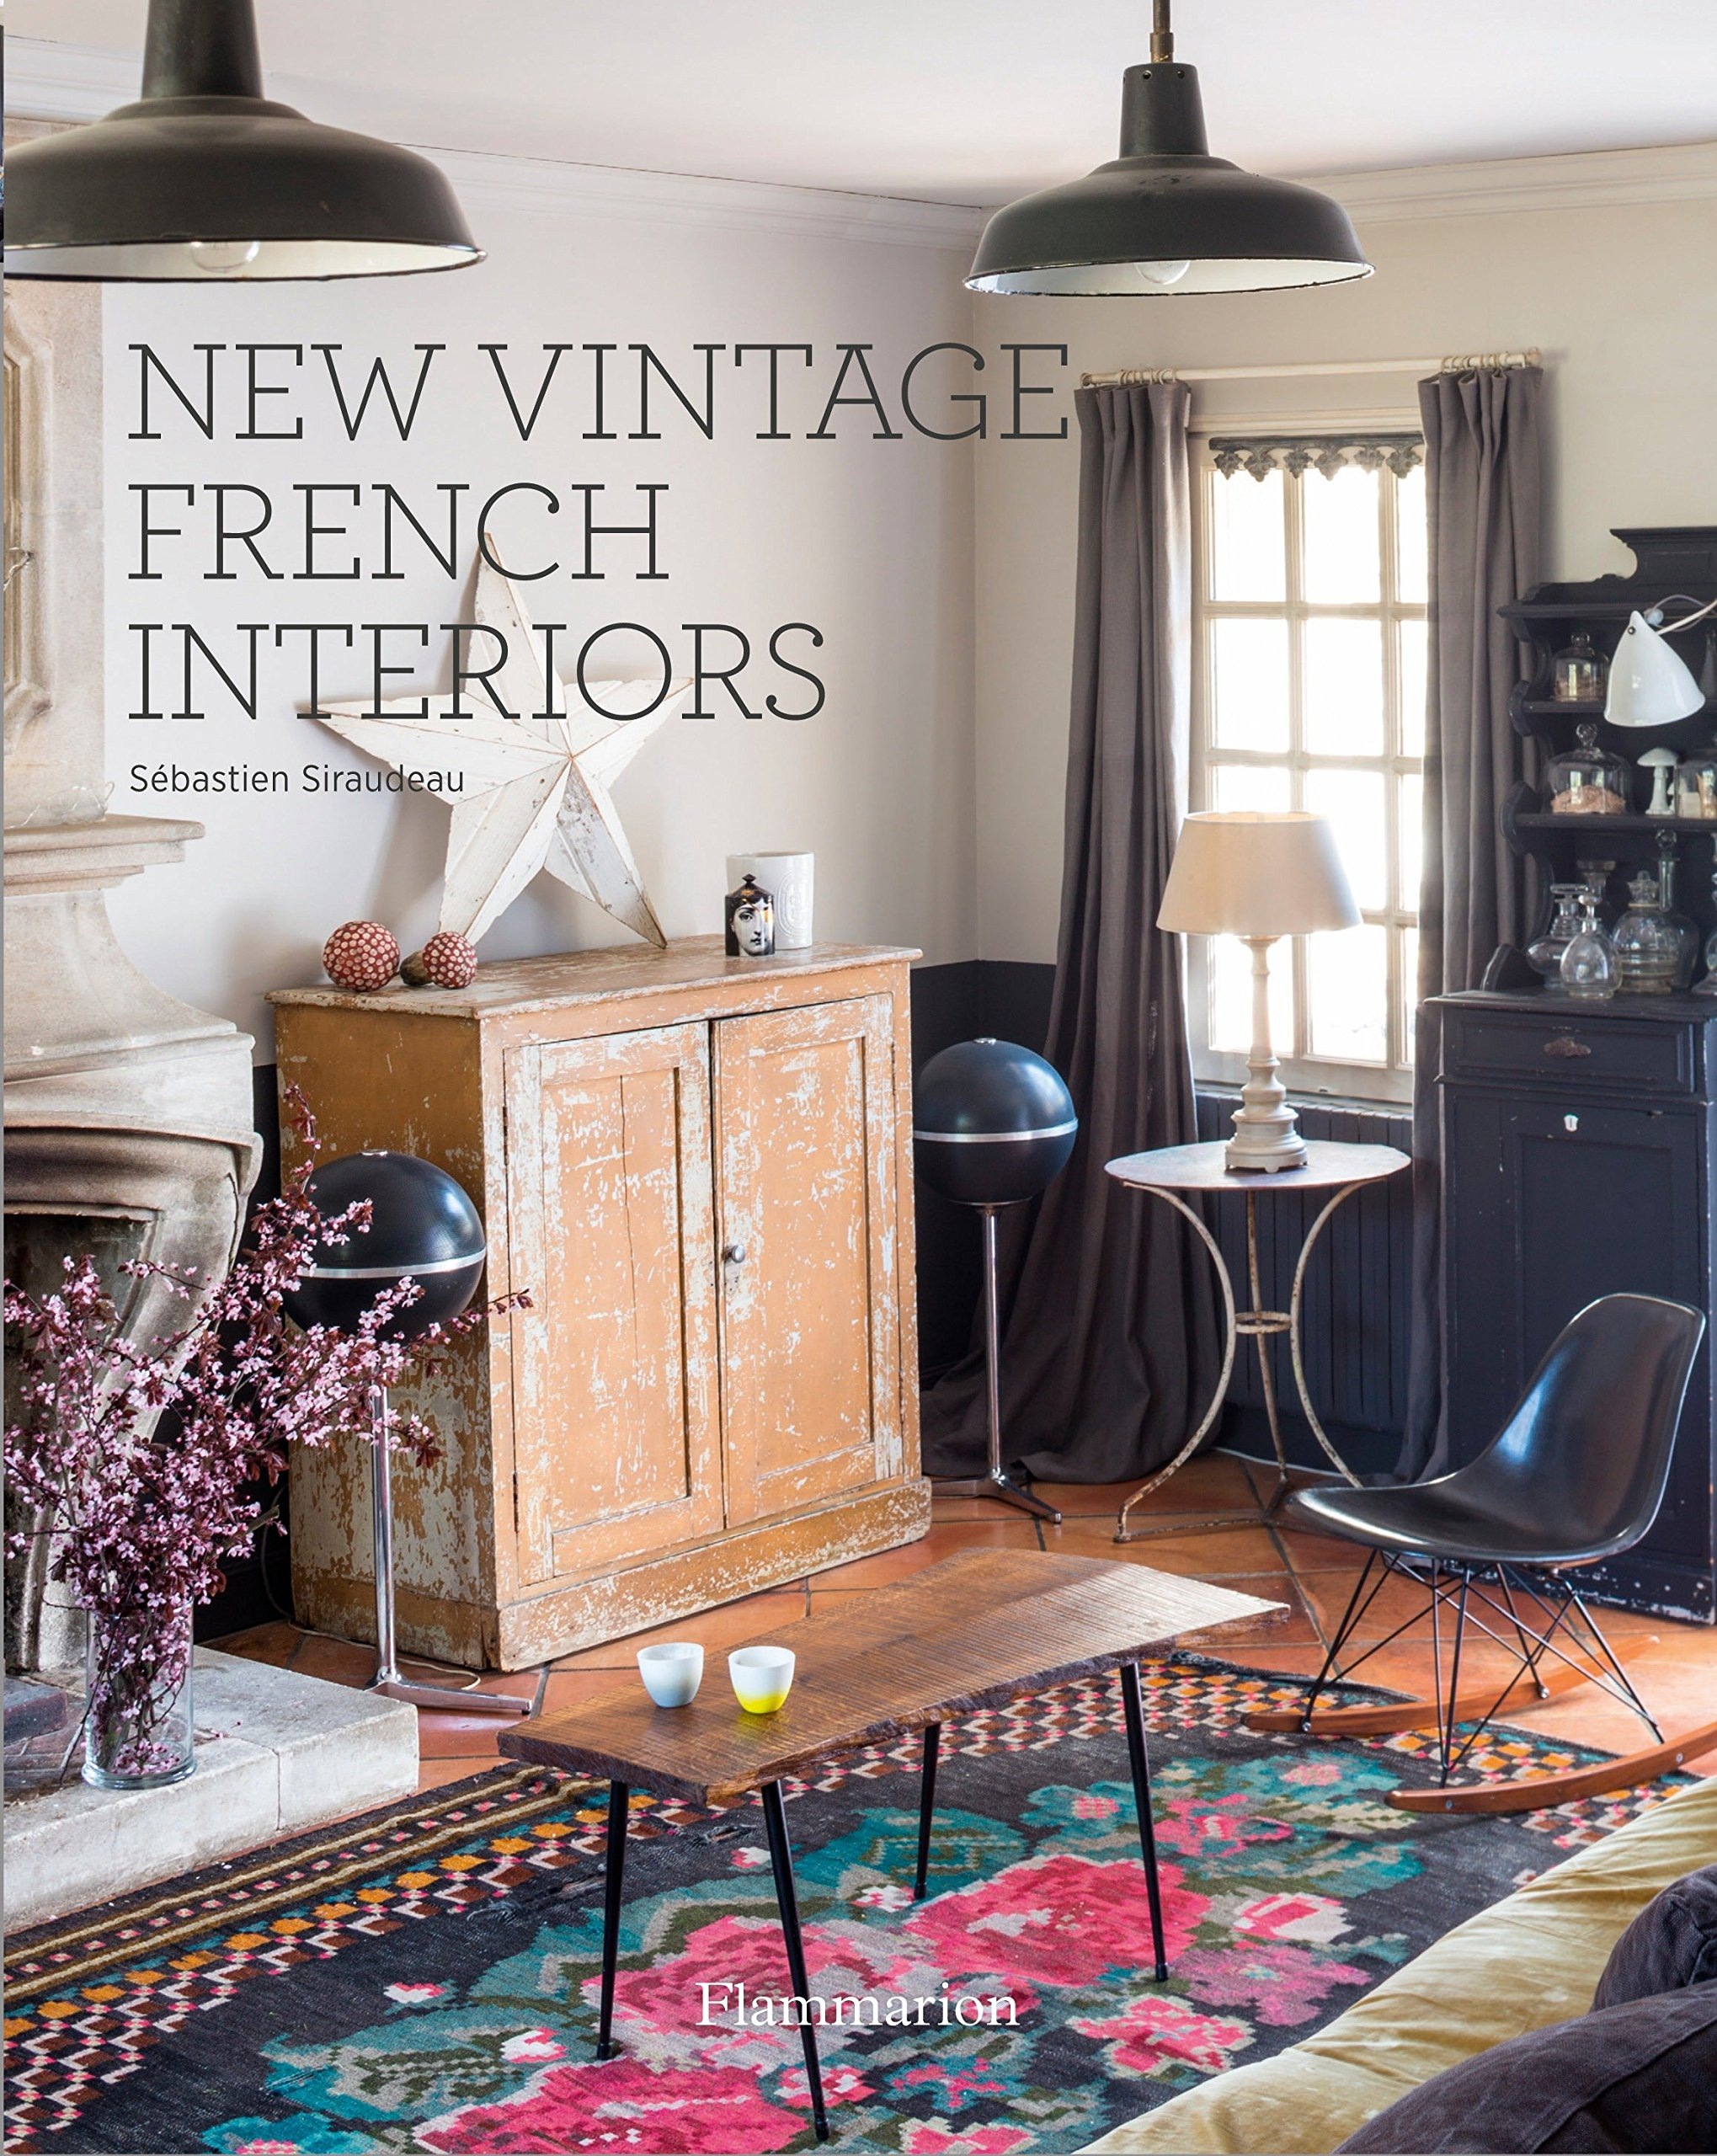 Beau New Vintage French Interiors: Sebastien Siraudeau: 9782080202260:  Amazon.com: Books